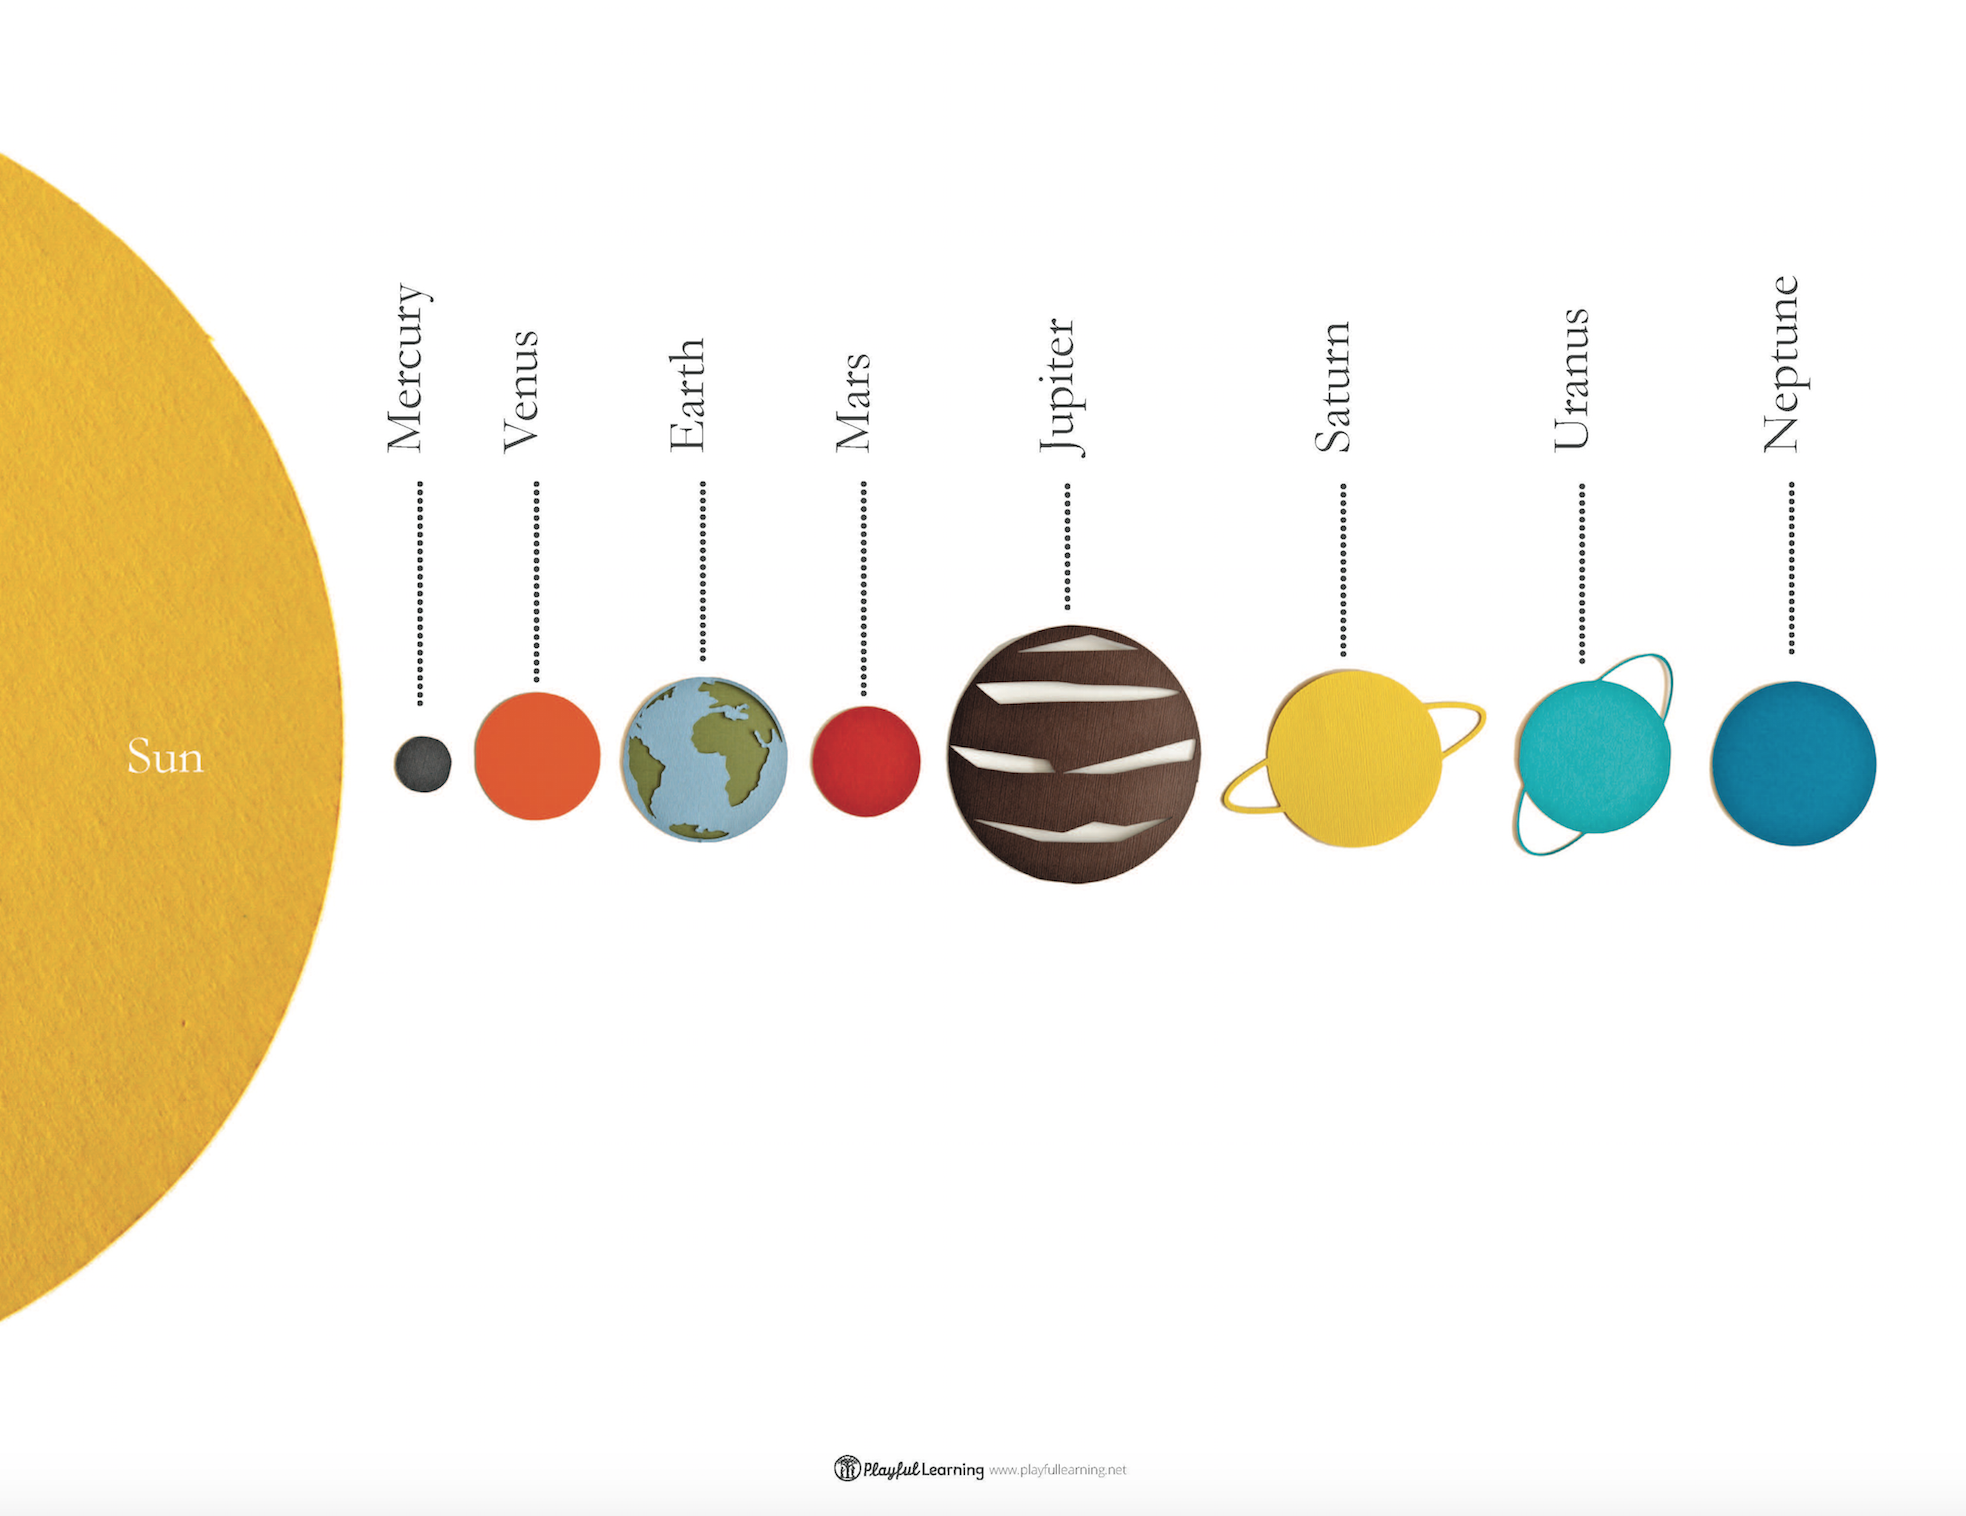 Playful Learning: The Solar System